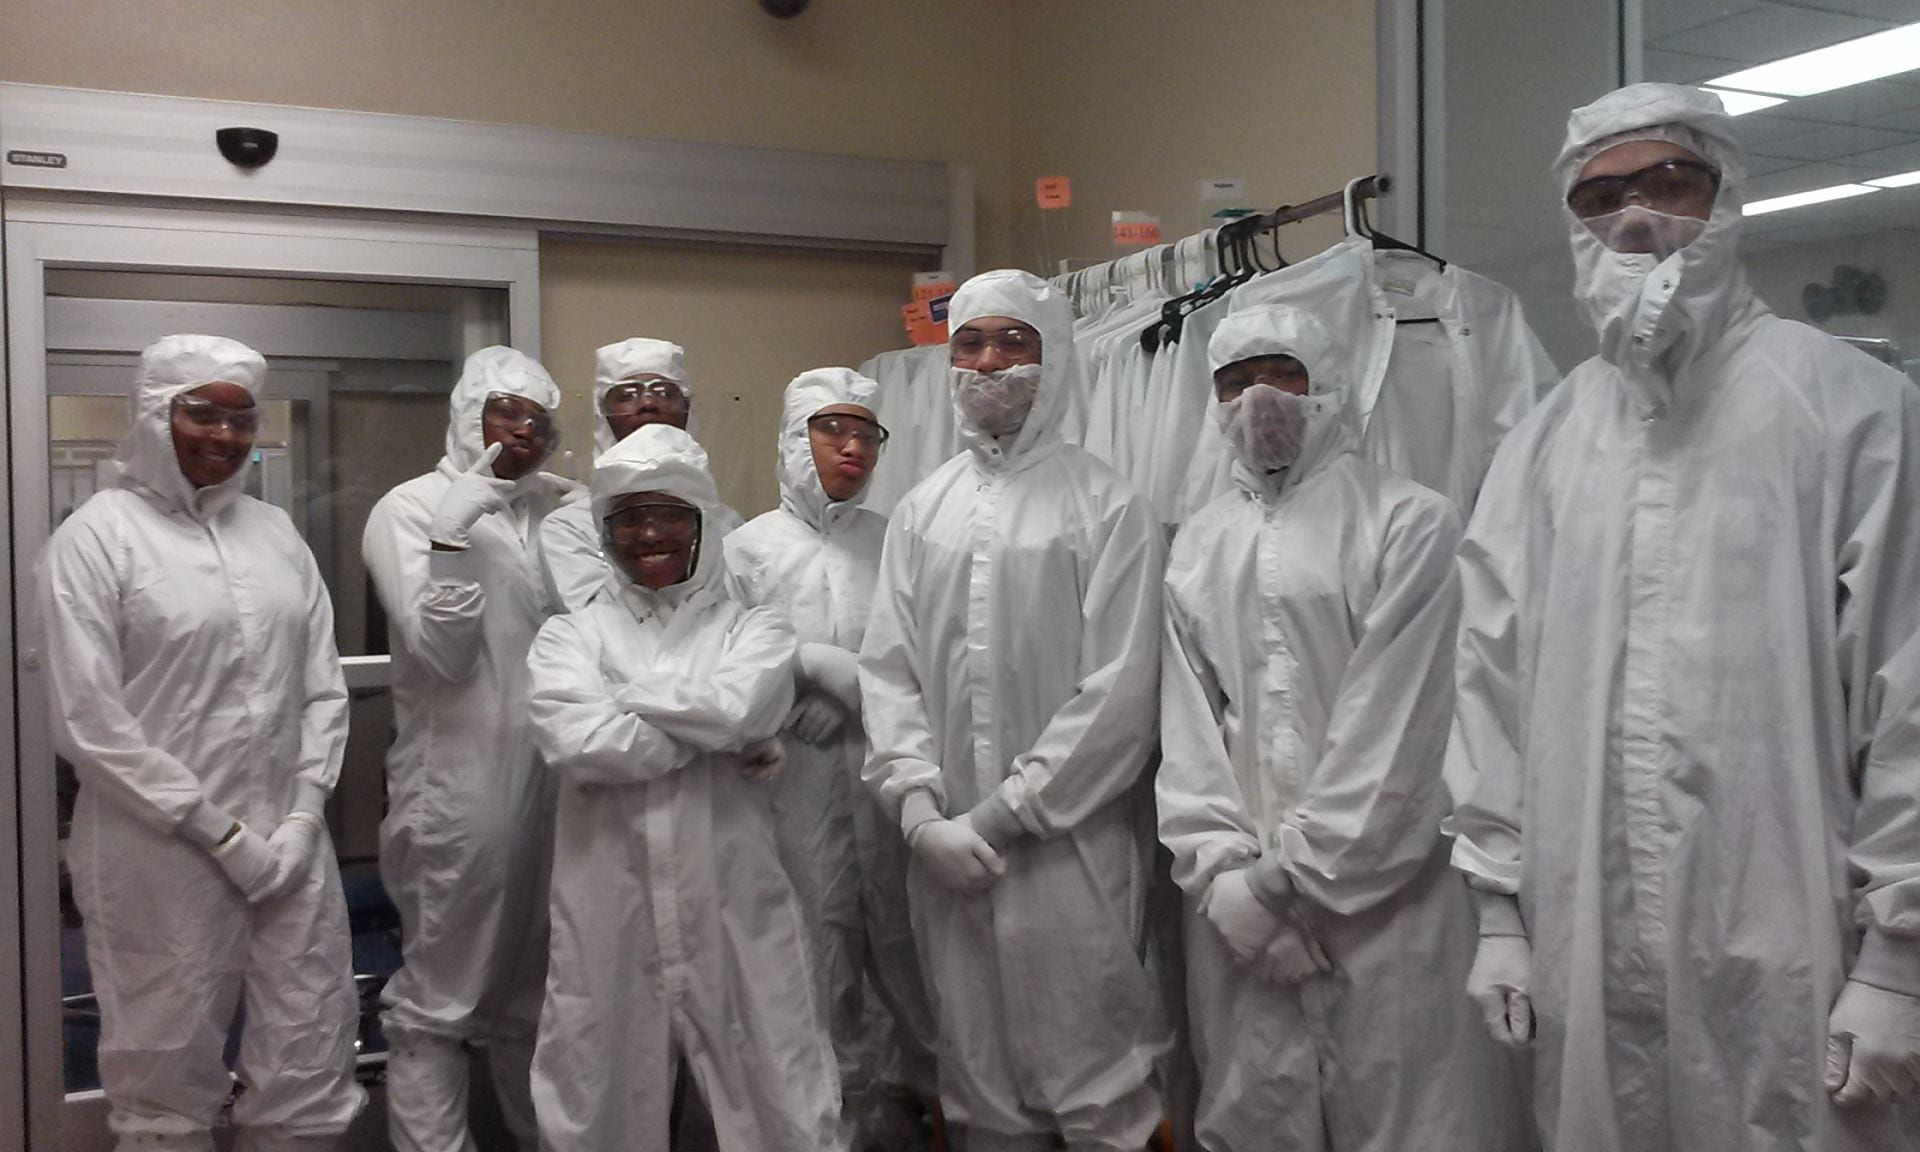 High school students in wearing cleanroom gowns